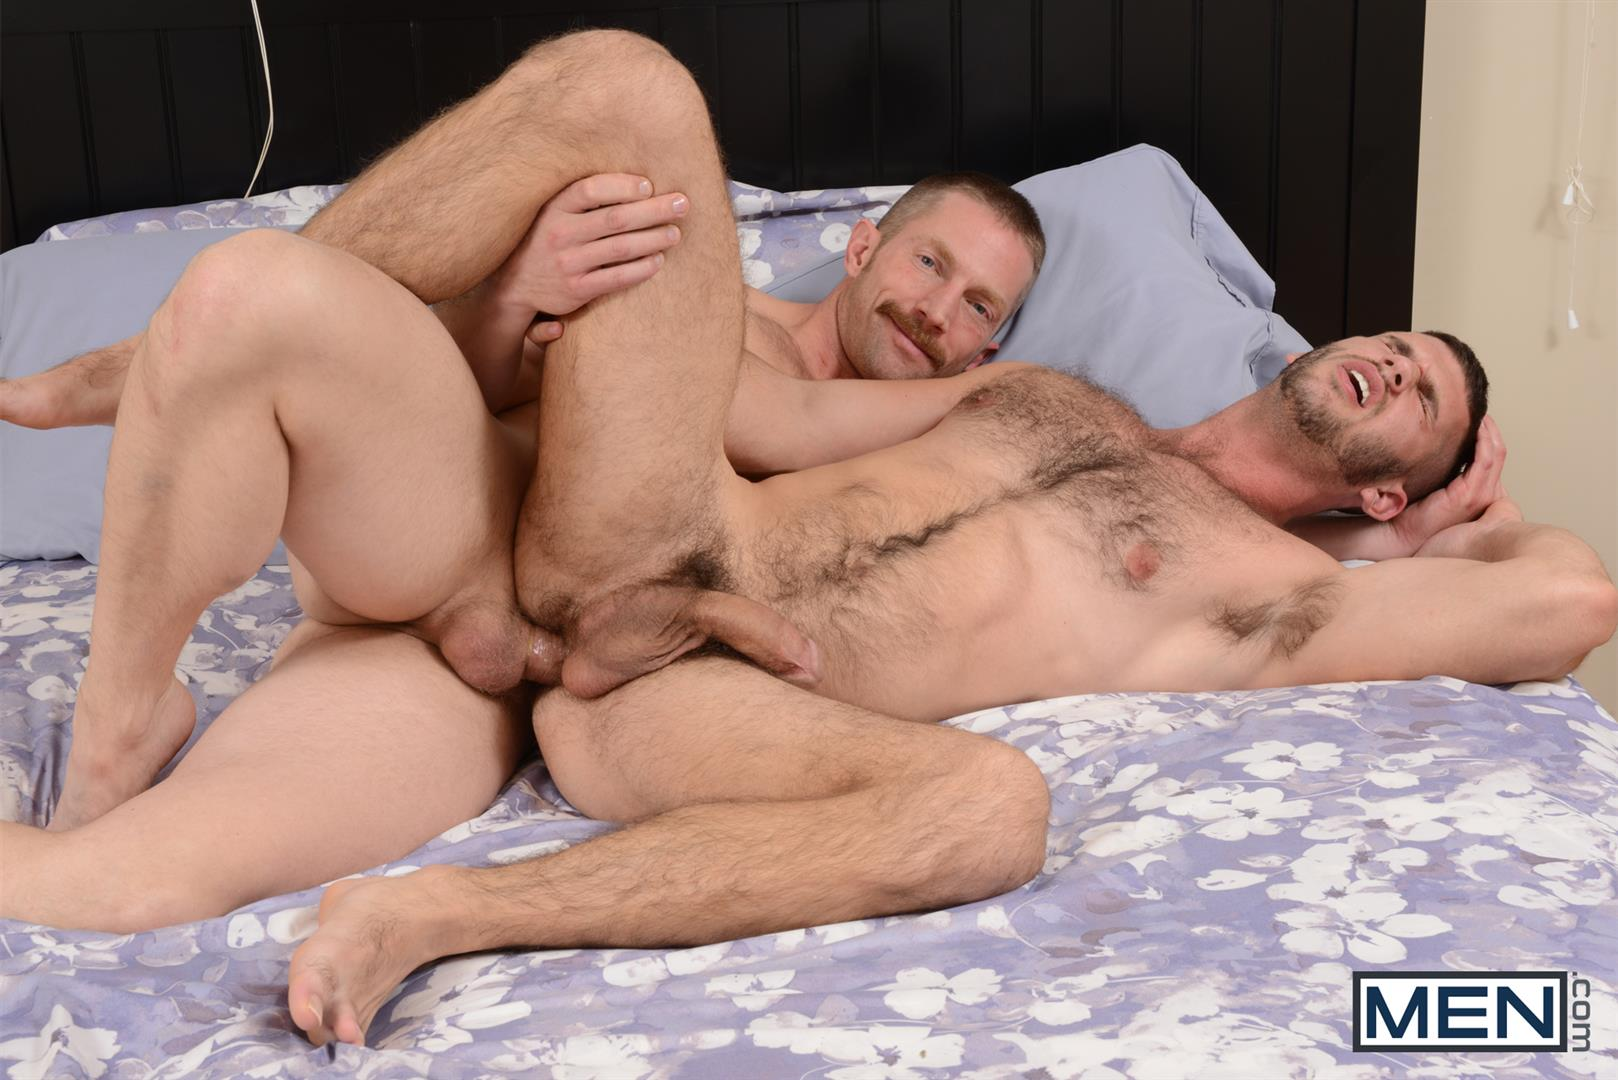 Men-Drill-My-Hole-Adam-Herst-and-Jimmy-Fanz-Hairy-Muscle-Jock-Getting-Fucked-Amateur-Gay-Porn-11 Hairy Muscle Hunk Jimmy Fanz Gets Fucked Hard By Adam Herst